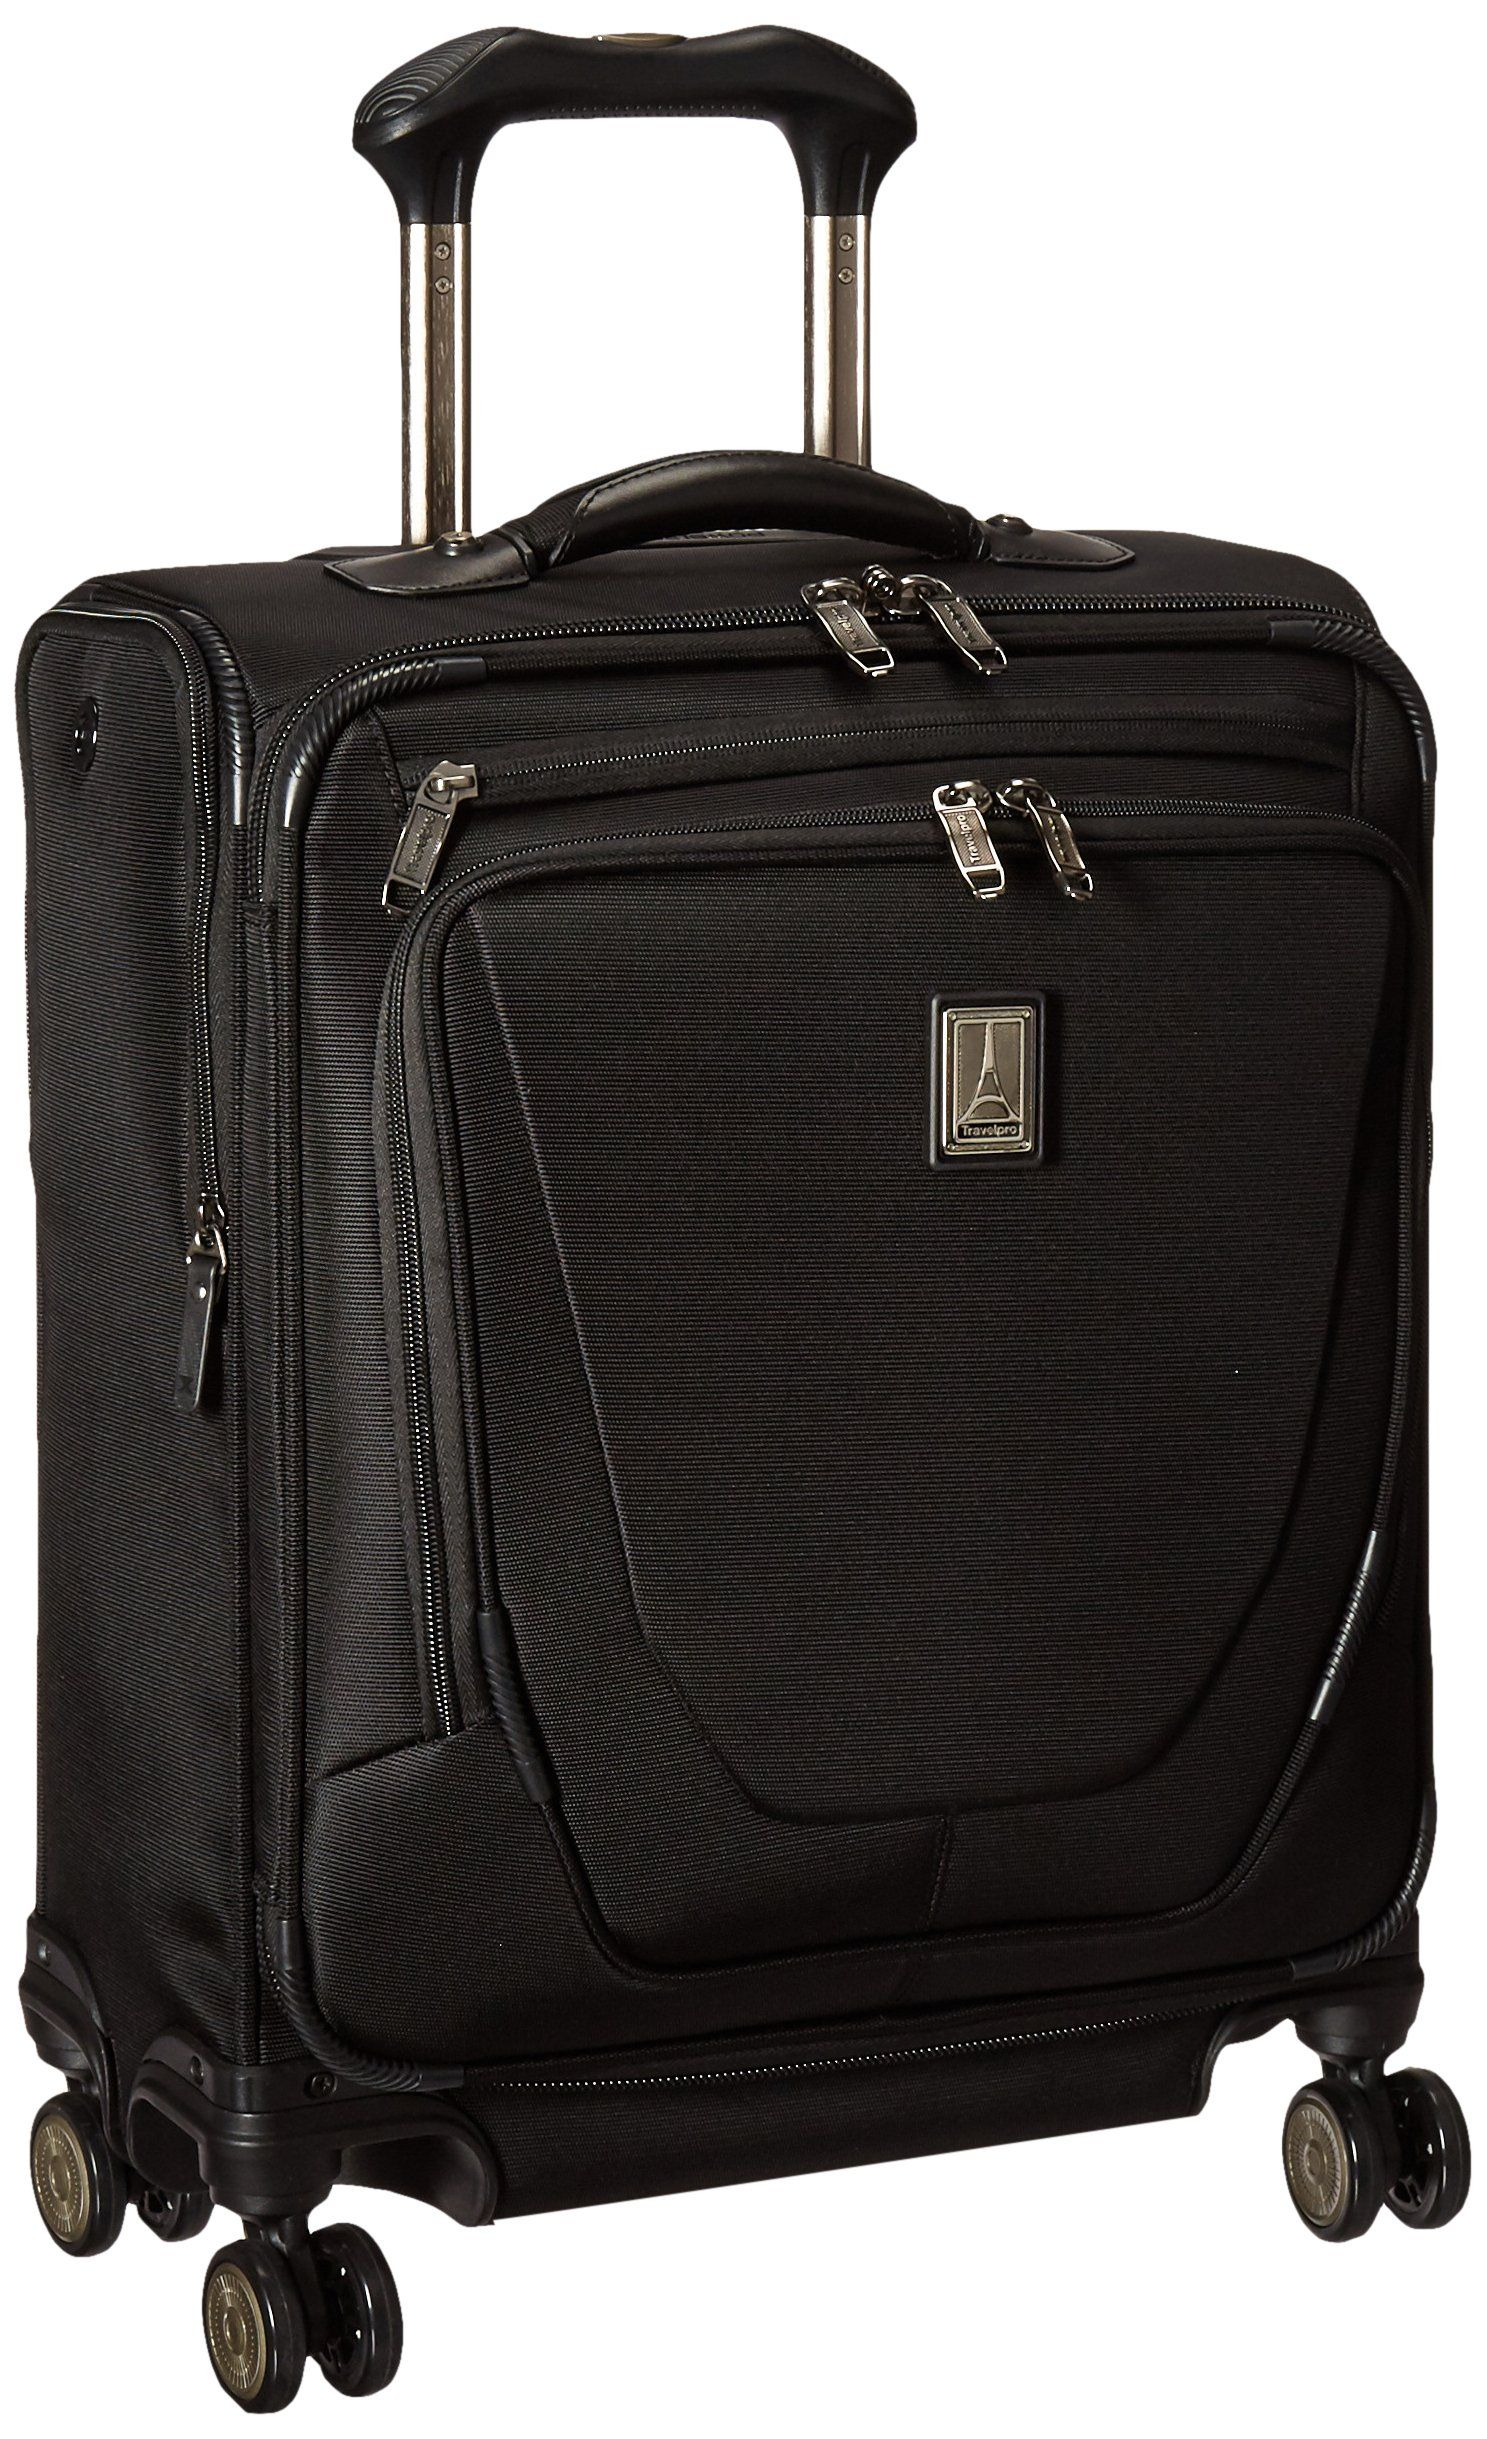 Travelpro Crew 11 Intl Carry-On Spinner, Black. High quality ...